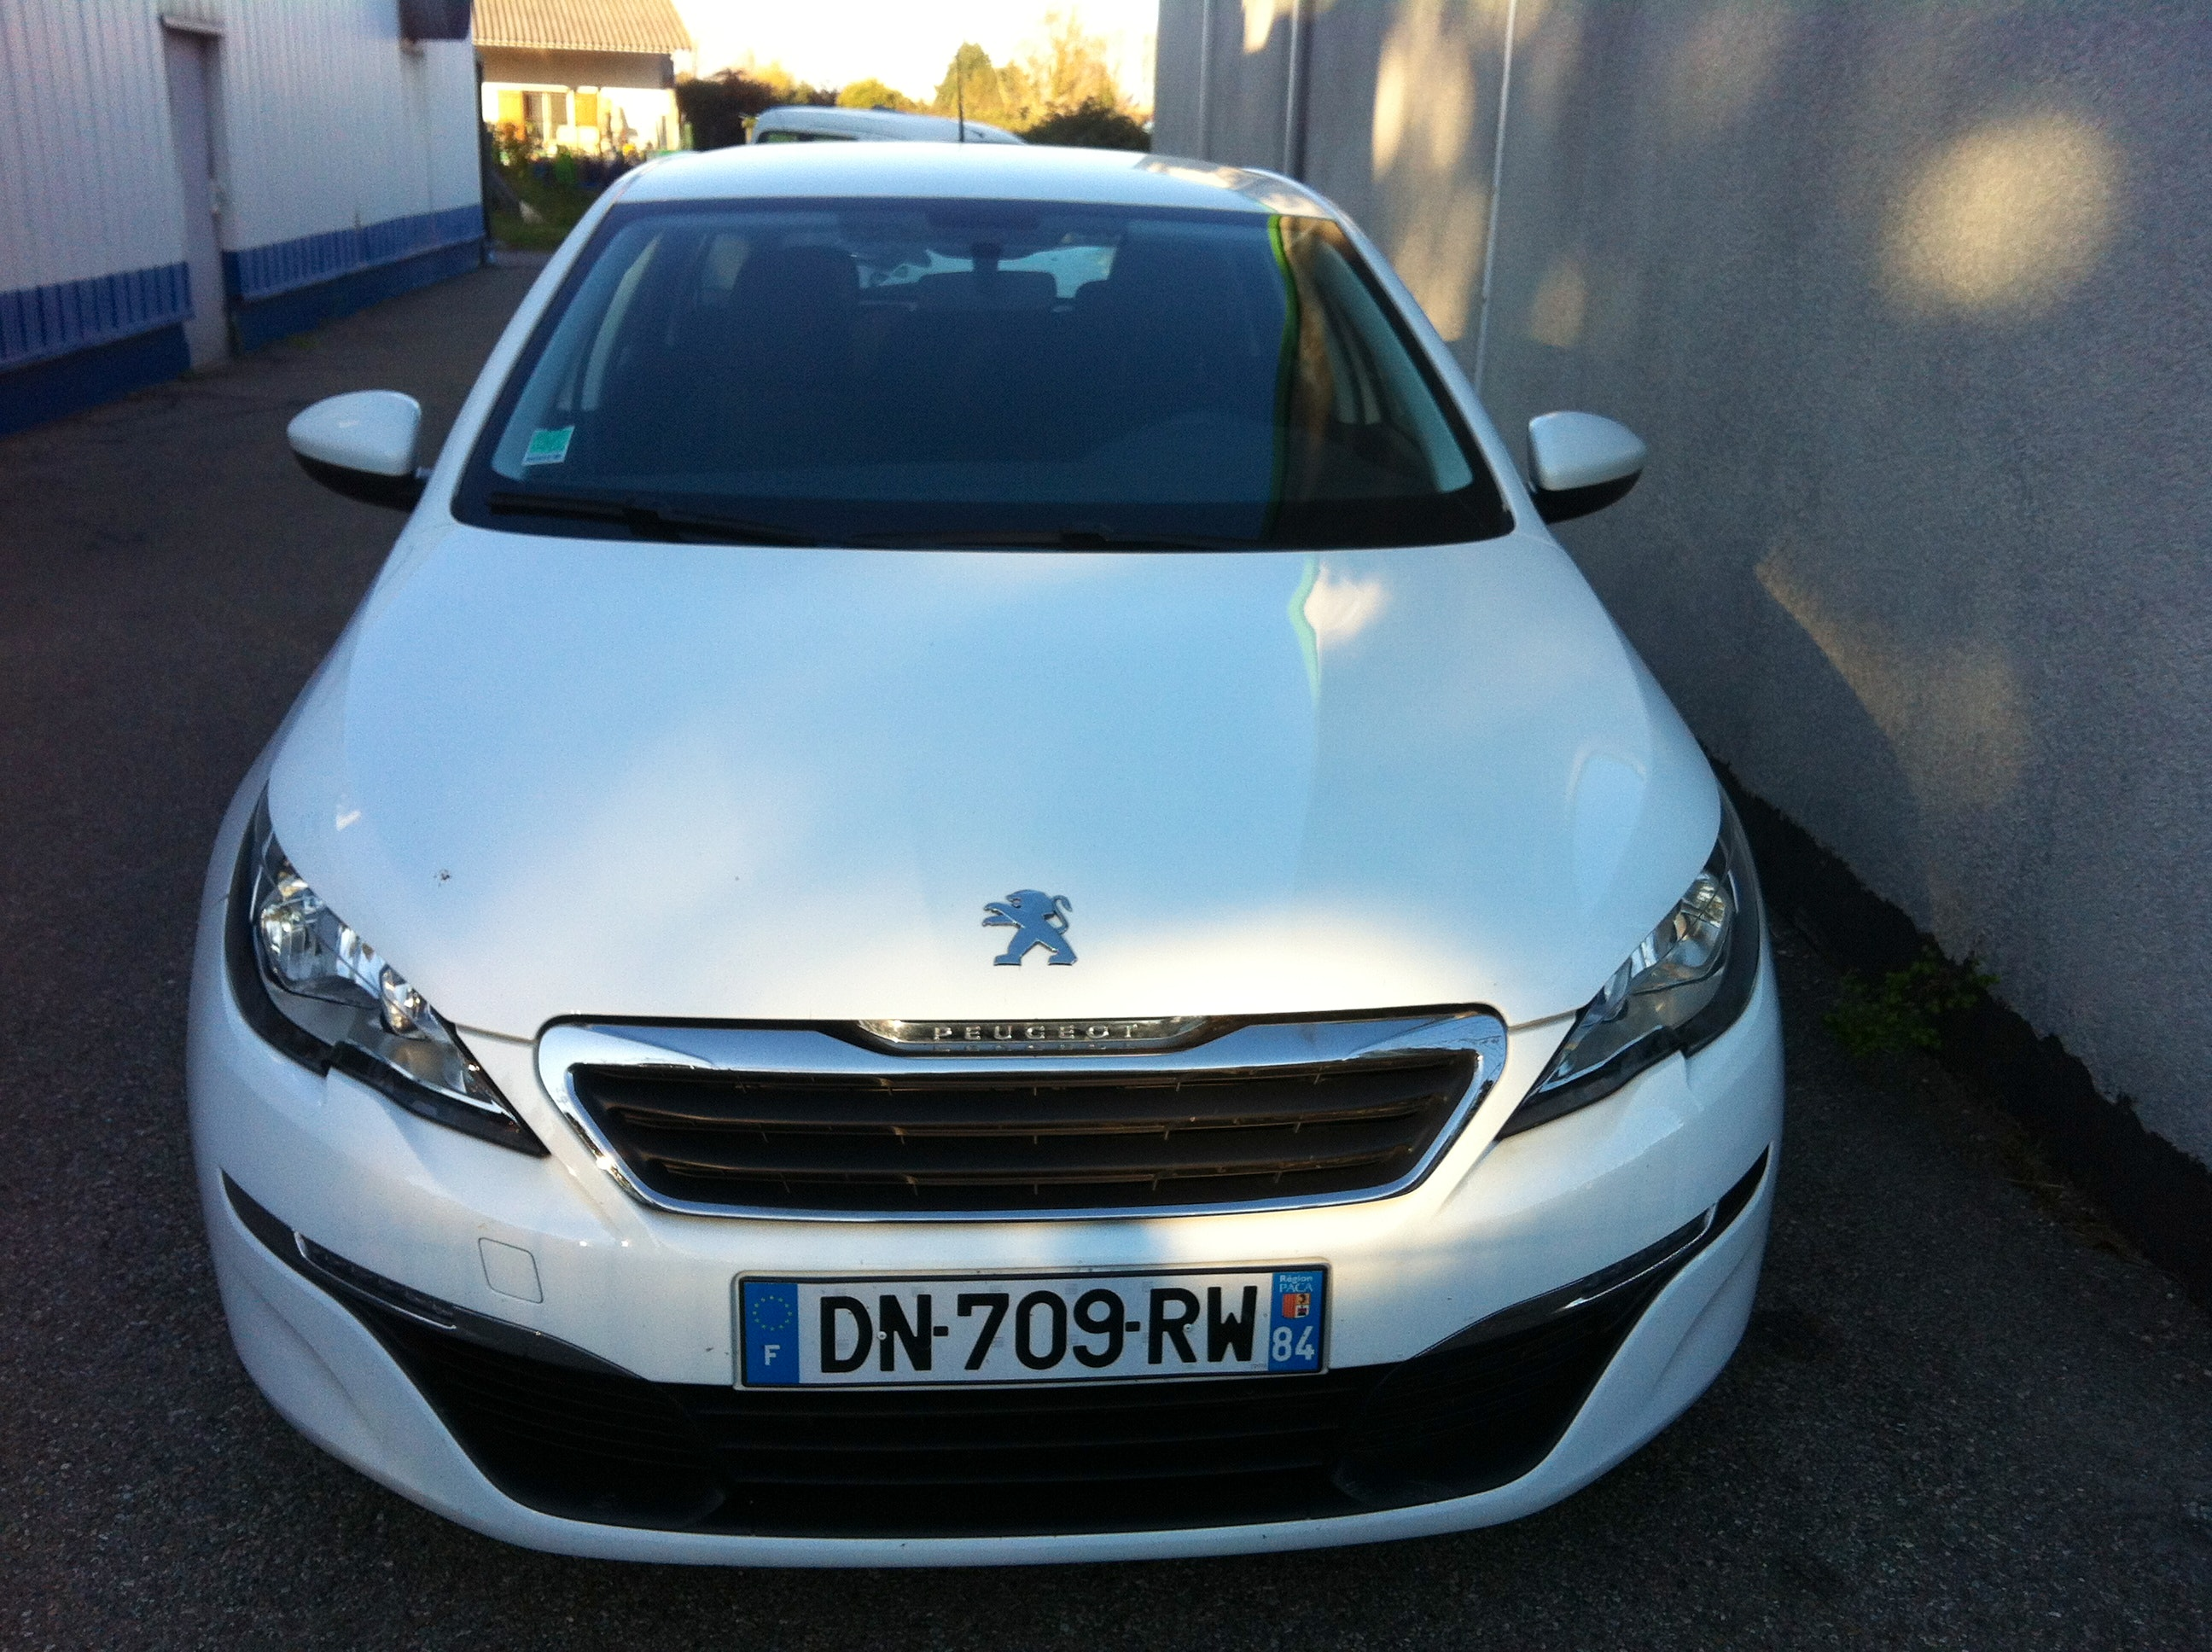 PEUGEOT 308 SW business1.6l hdi, 2015, Diesel